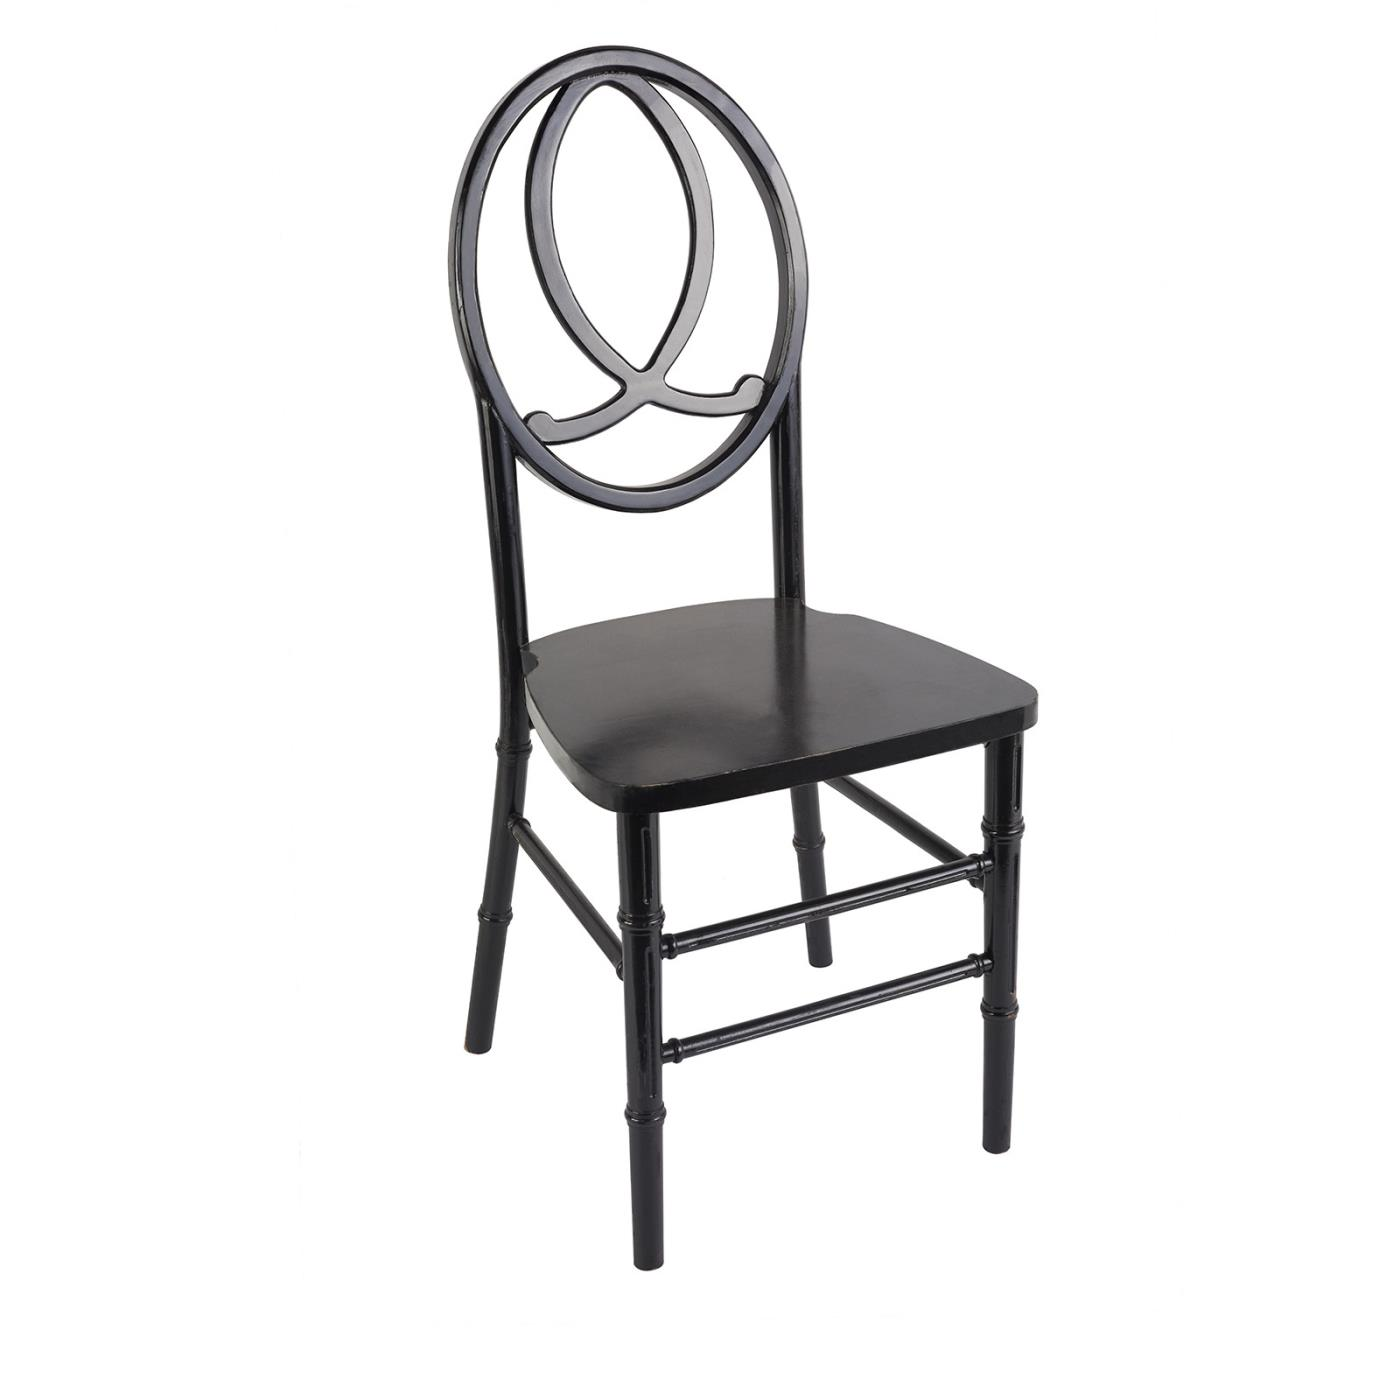 Omega Chair - Black